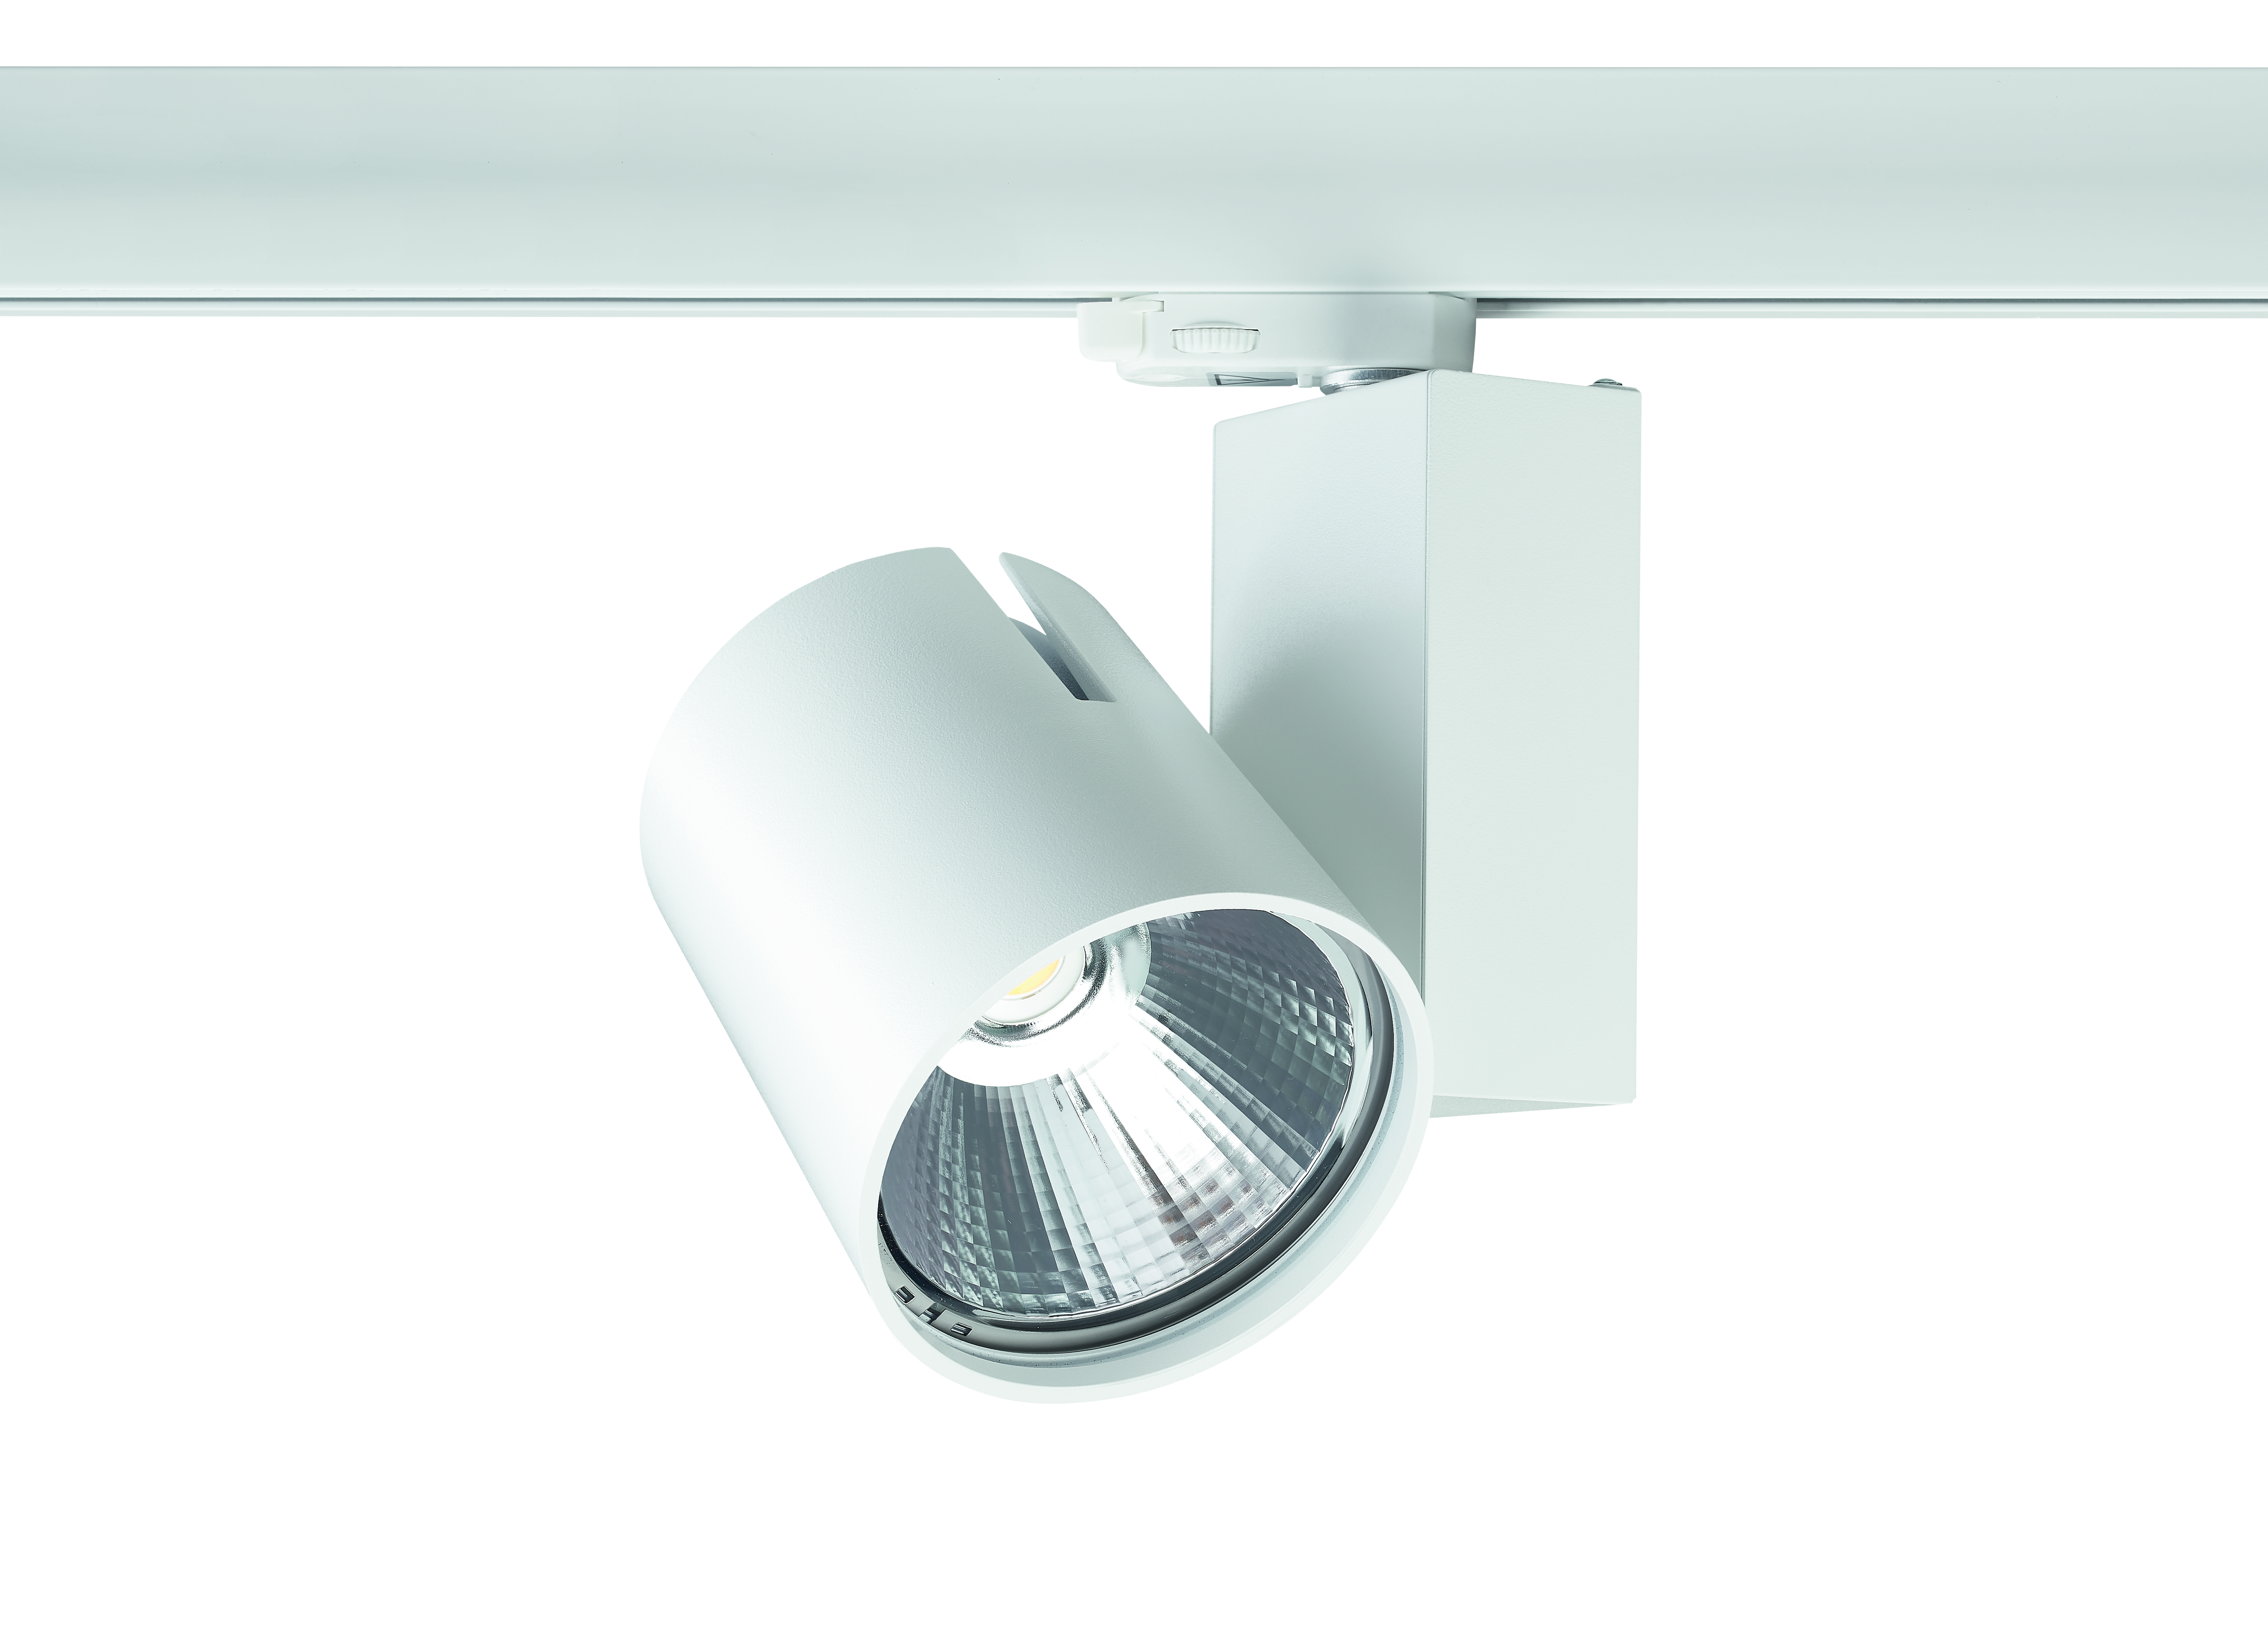 track lighting solutions. Product Image For 0004869 Track Lighting Solutions